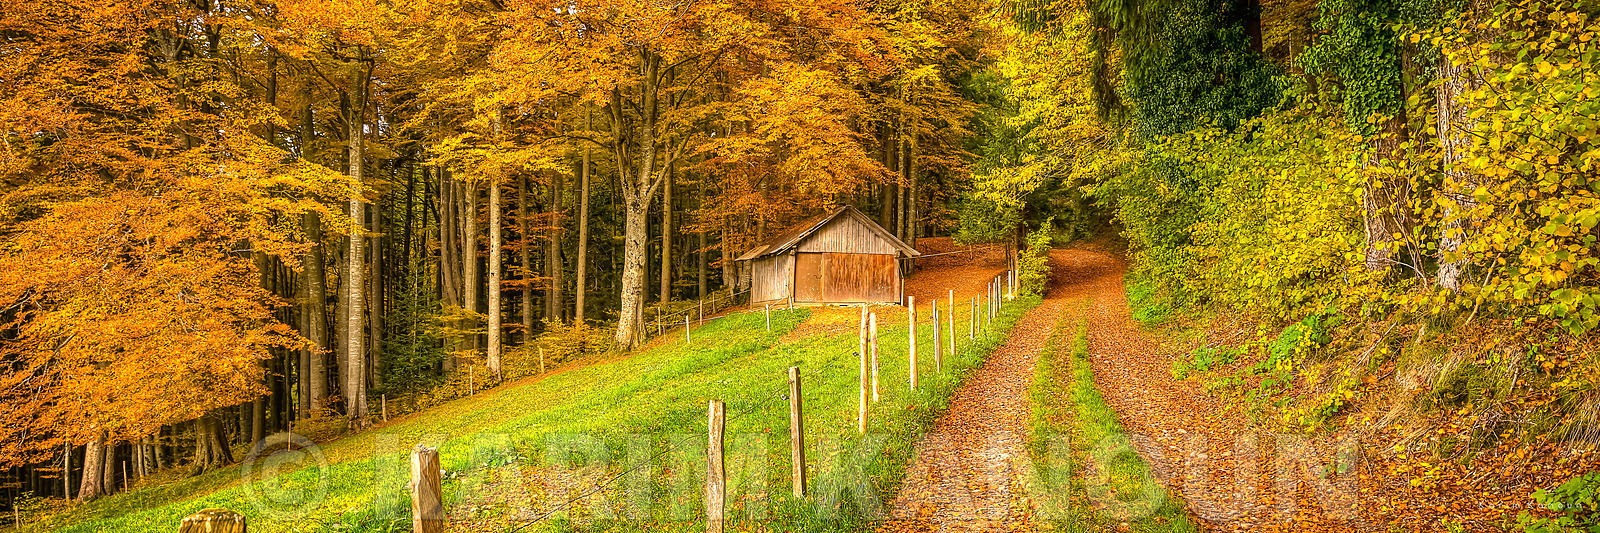 Panorama - Autum path to an abandoned hut